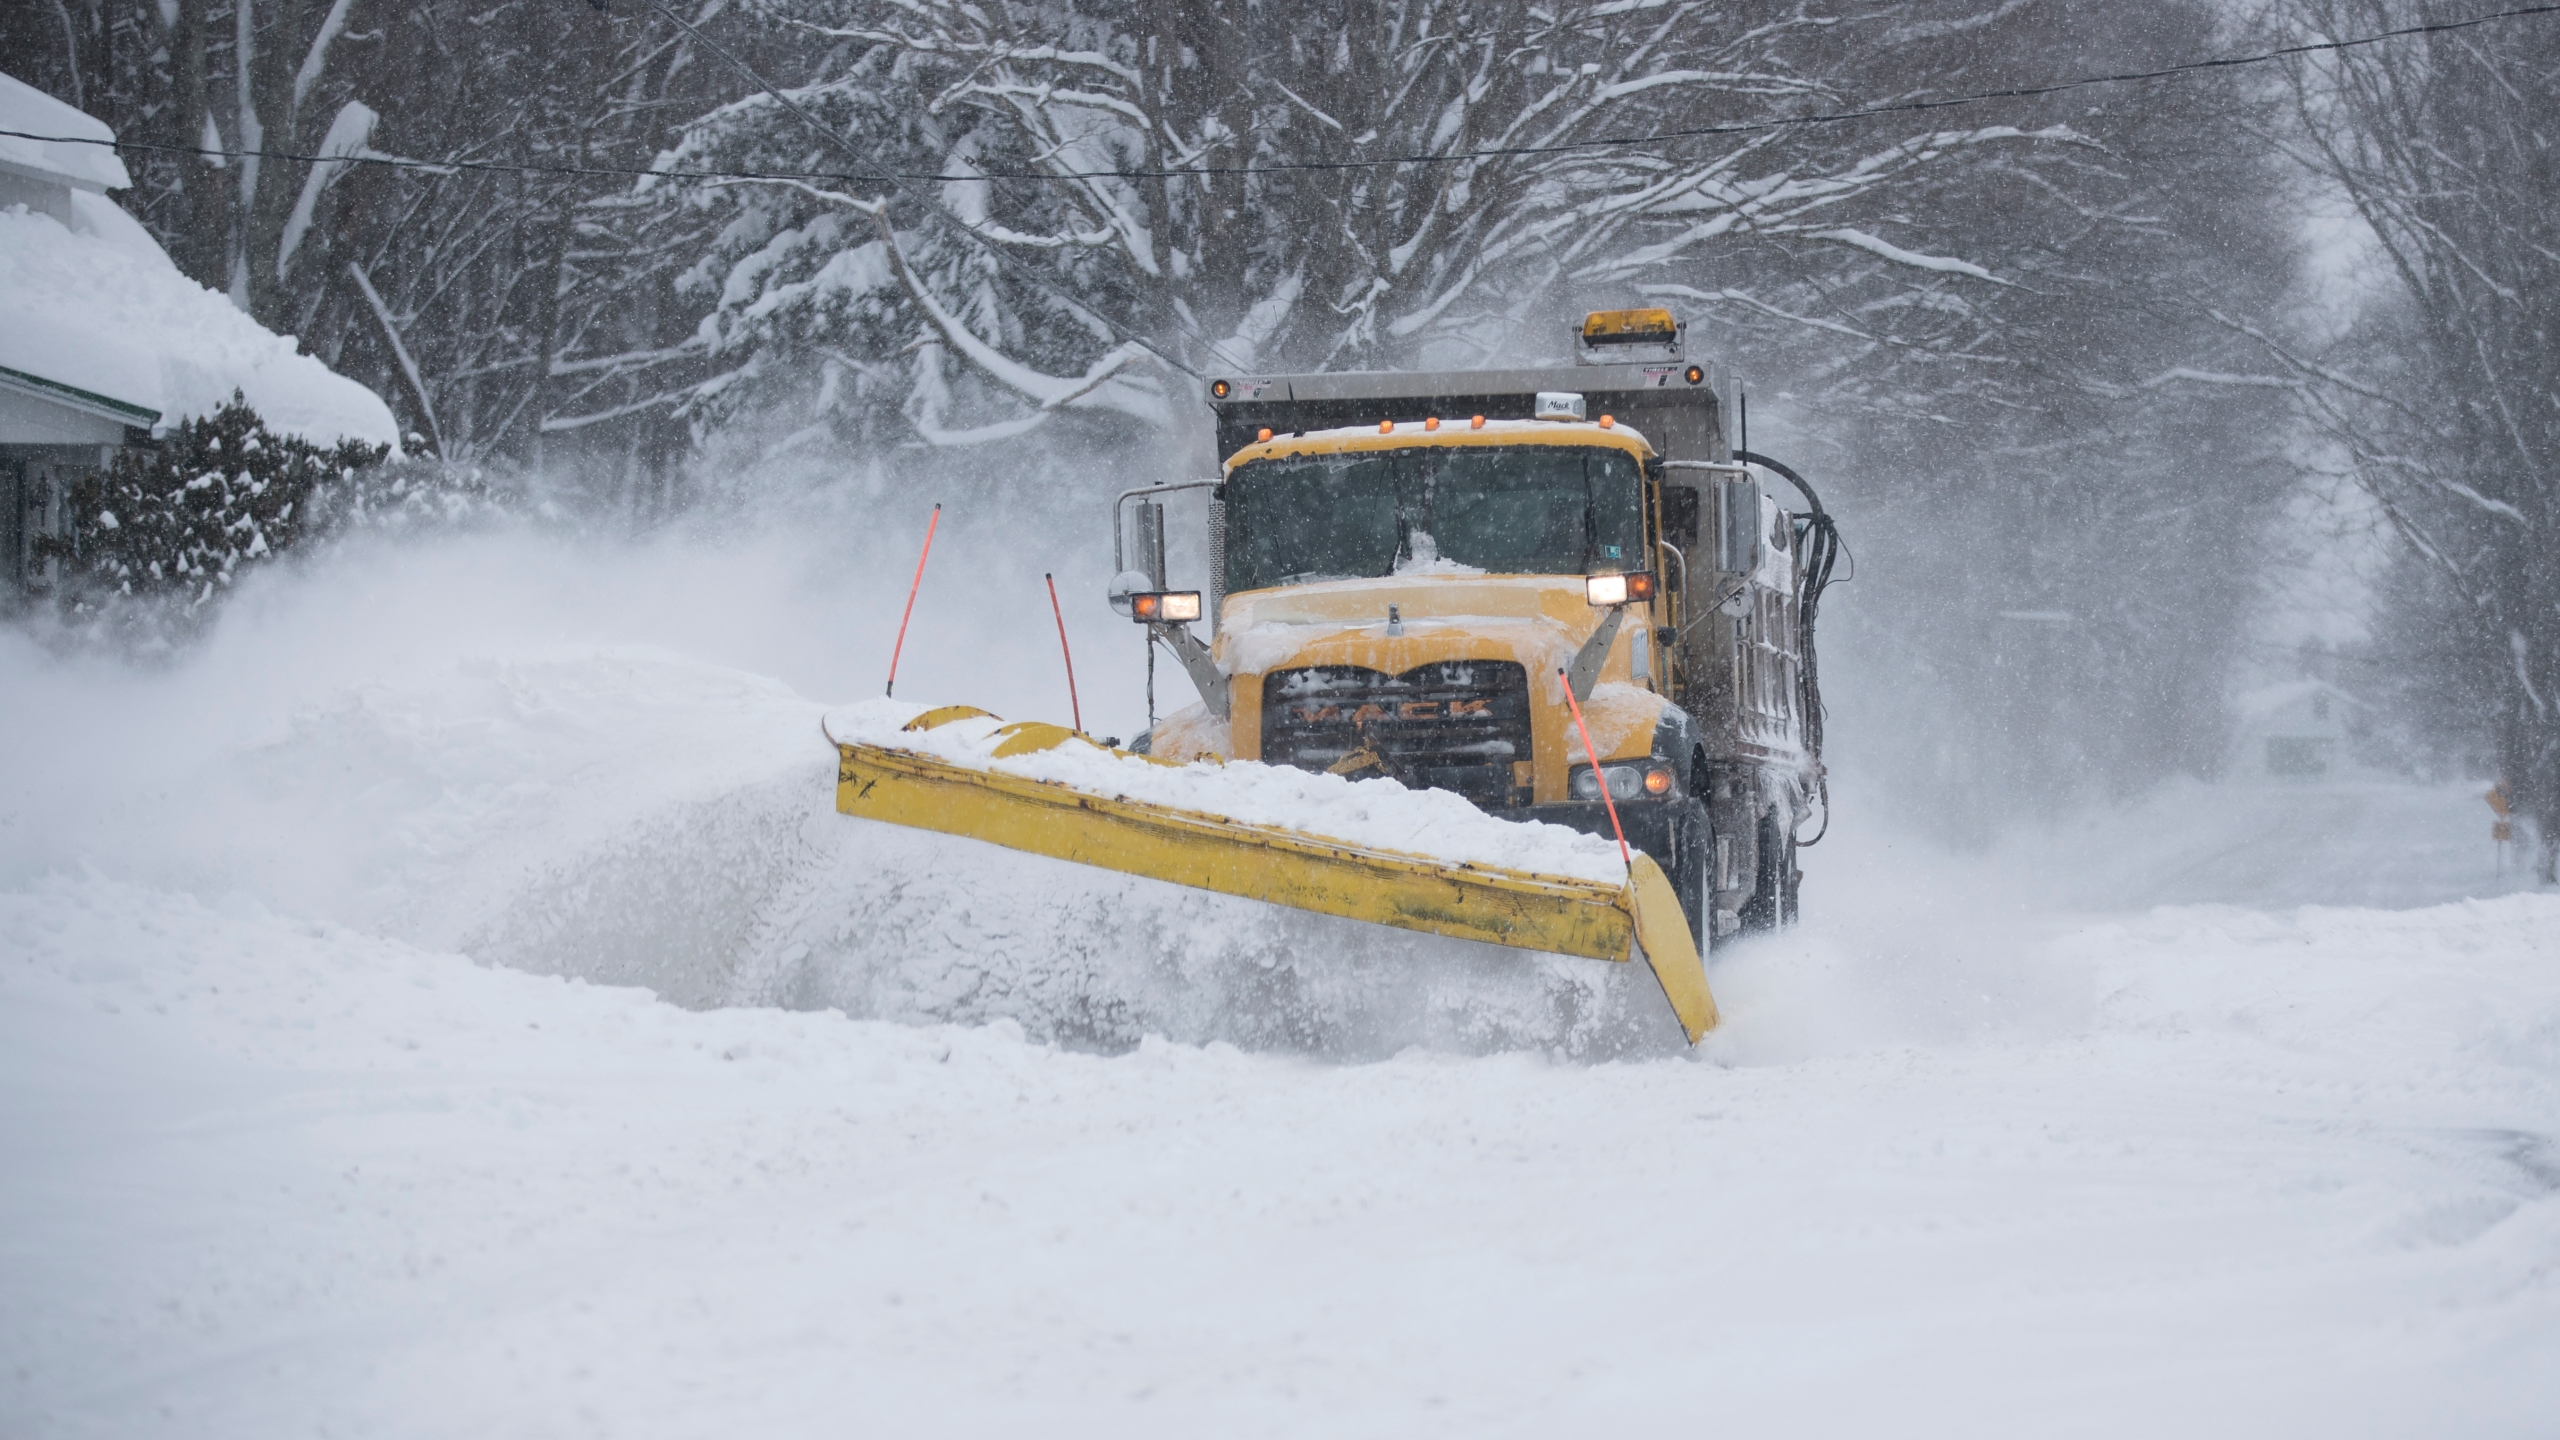 Major Winter Storm Hammers East Coast With High Winds And Heavy Snow.jpg